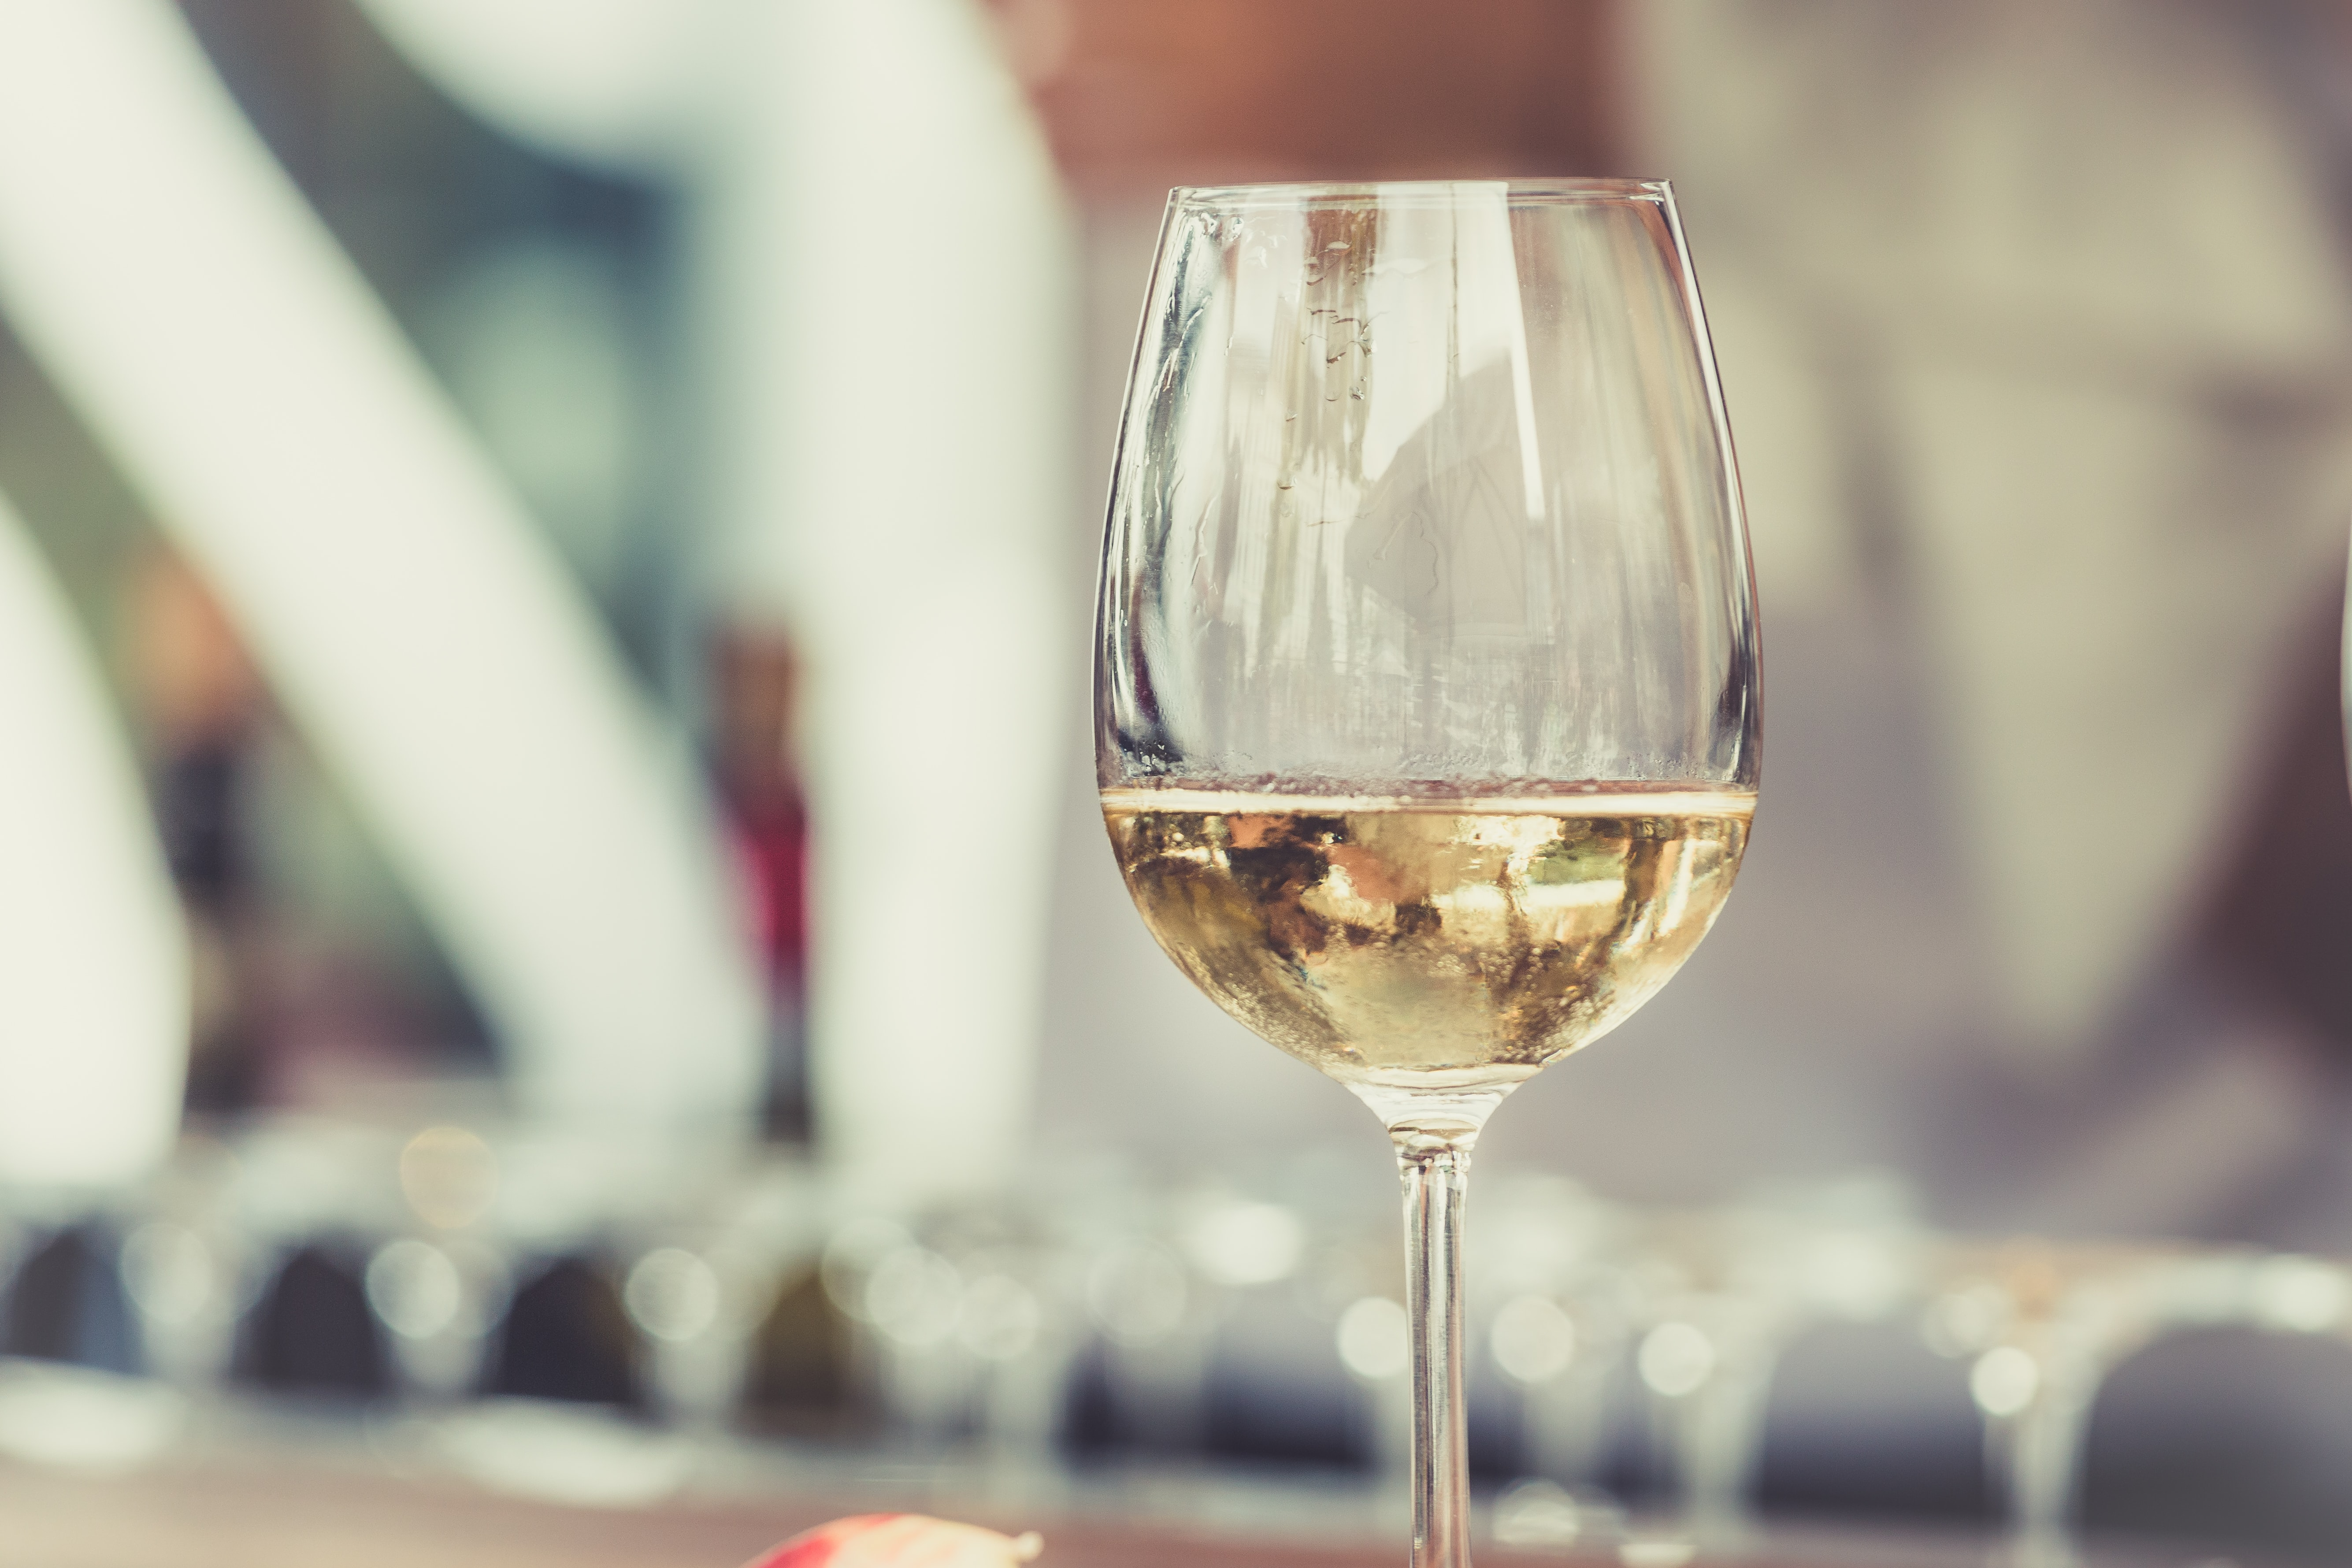 Macro view of a wine glass with wine in it in Torvehallerne